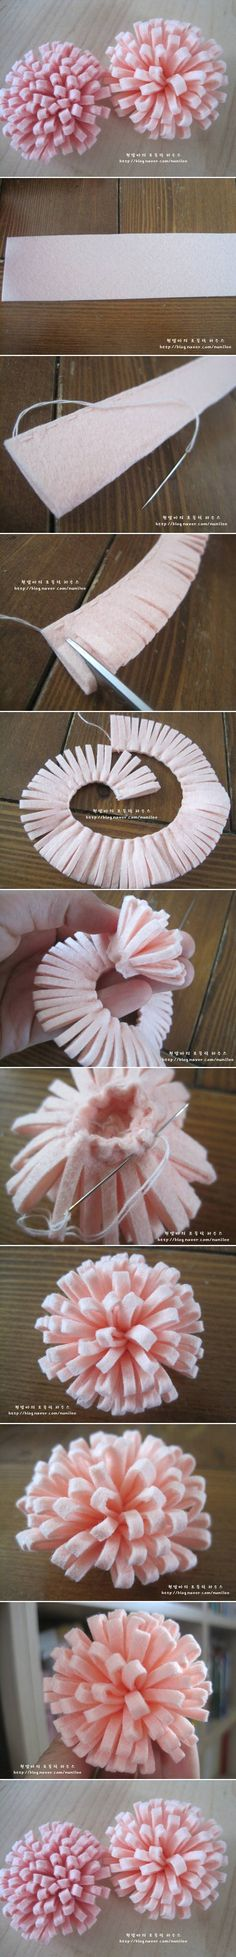 DIY Simple Easy Felt Flower